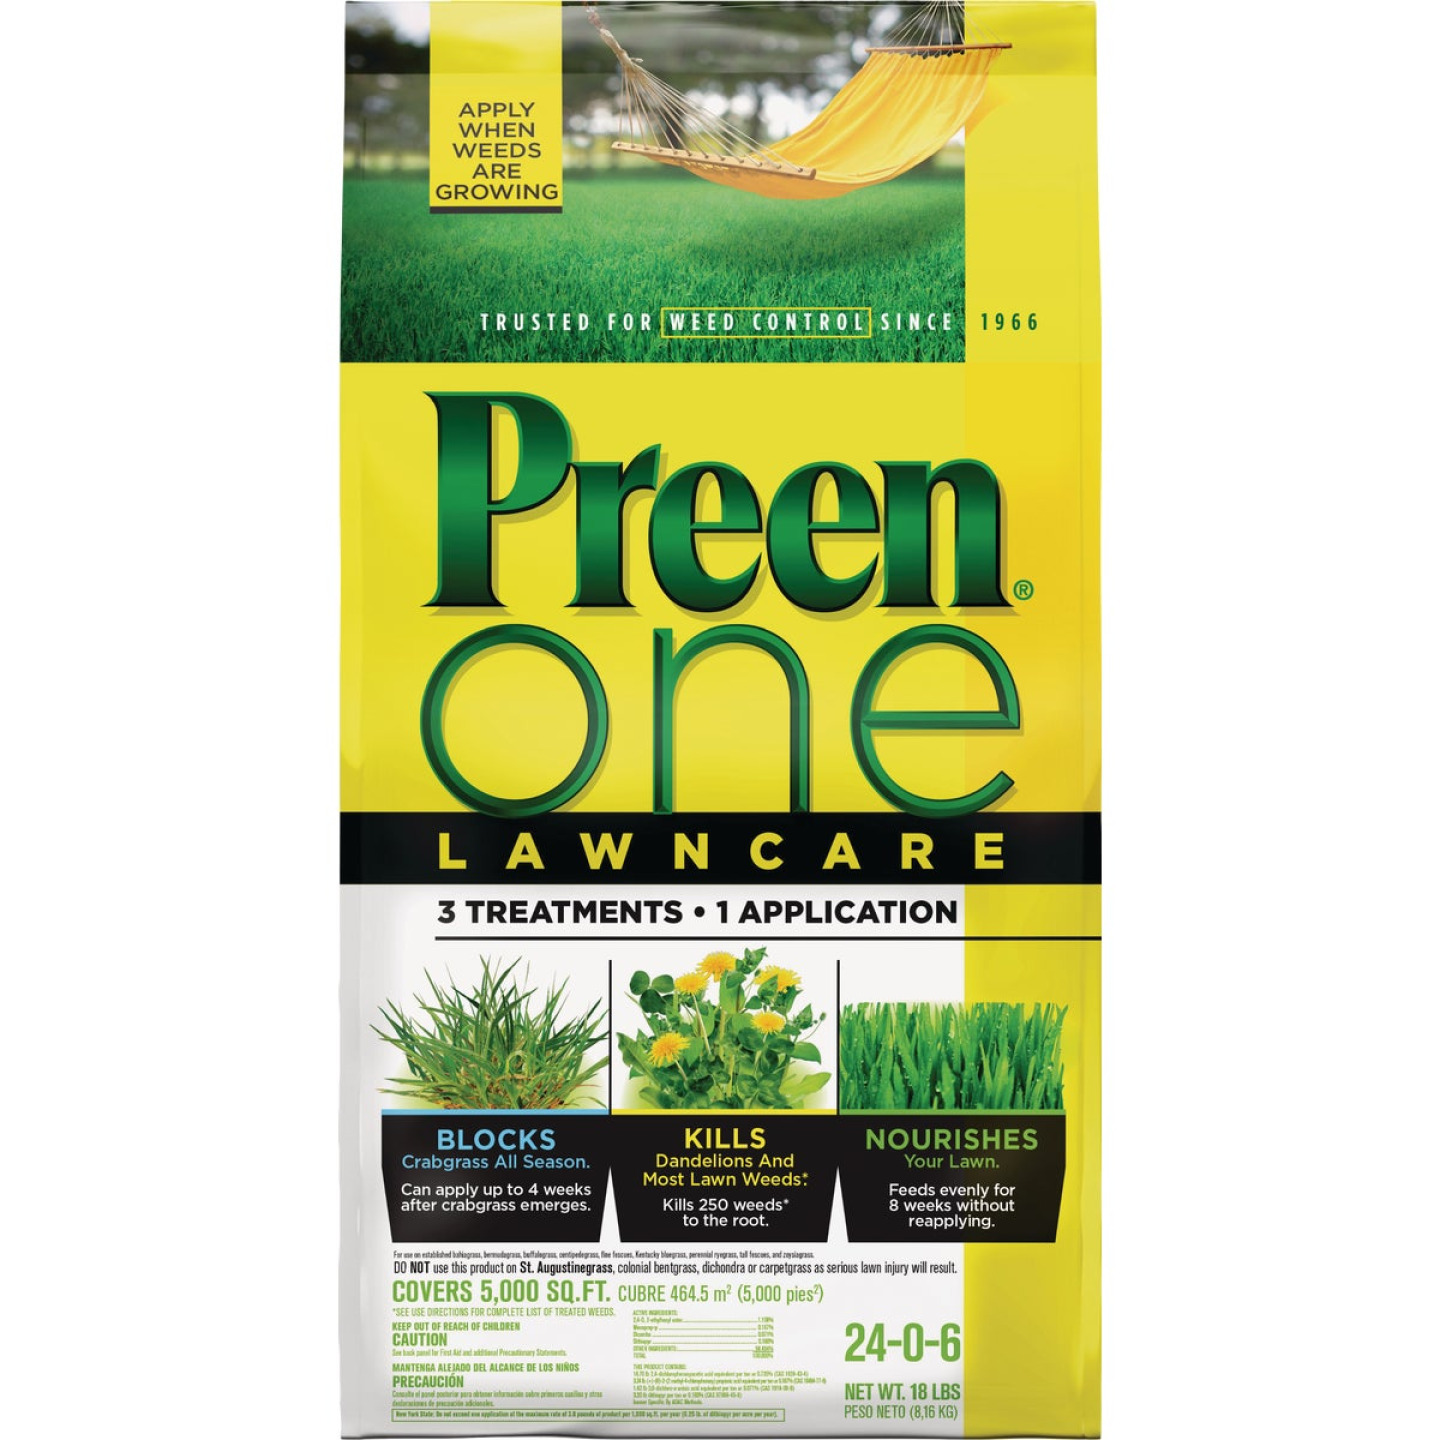 Preen One Lawn Care 18 Lb. Ready To Use Granules Weed Killer with Fertilizer Image 1